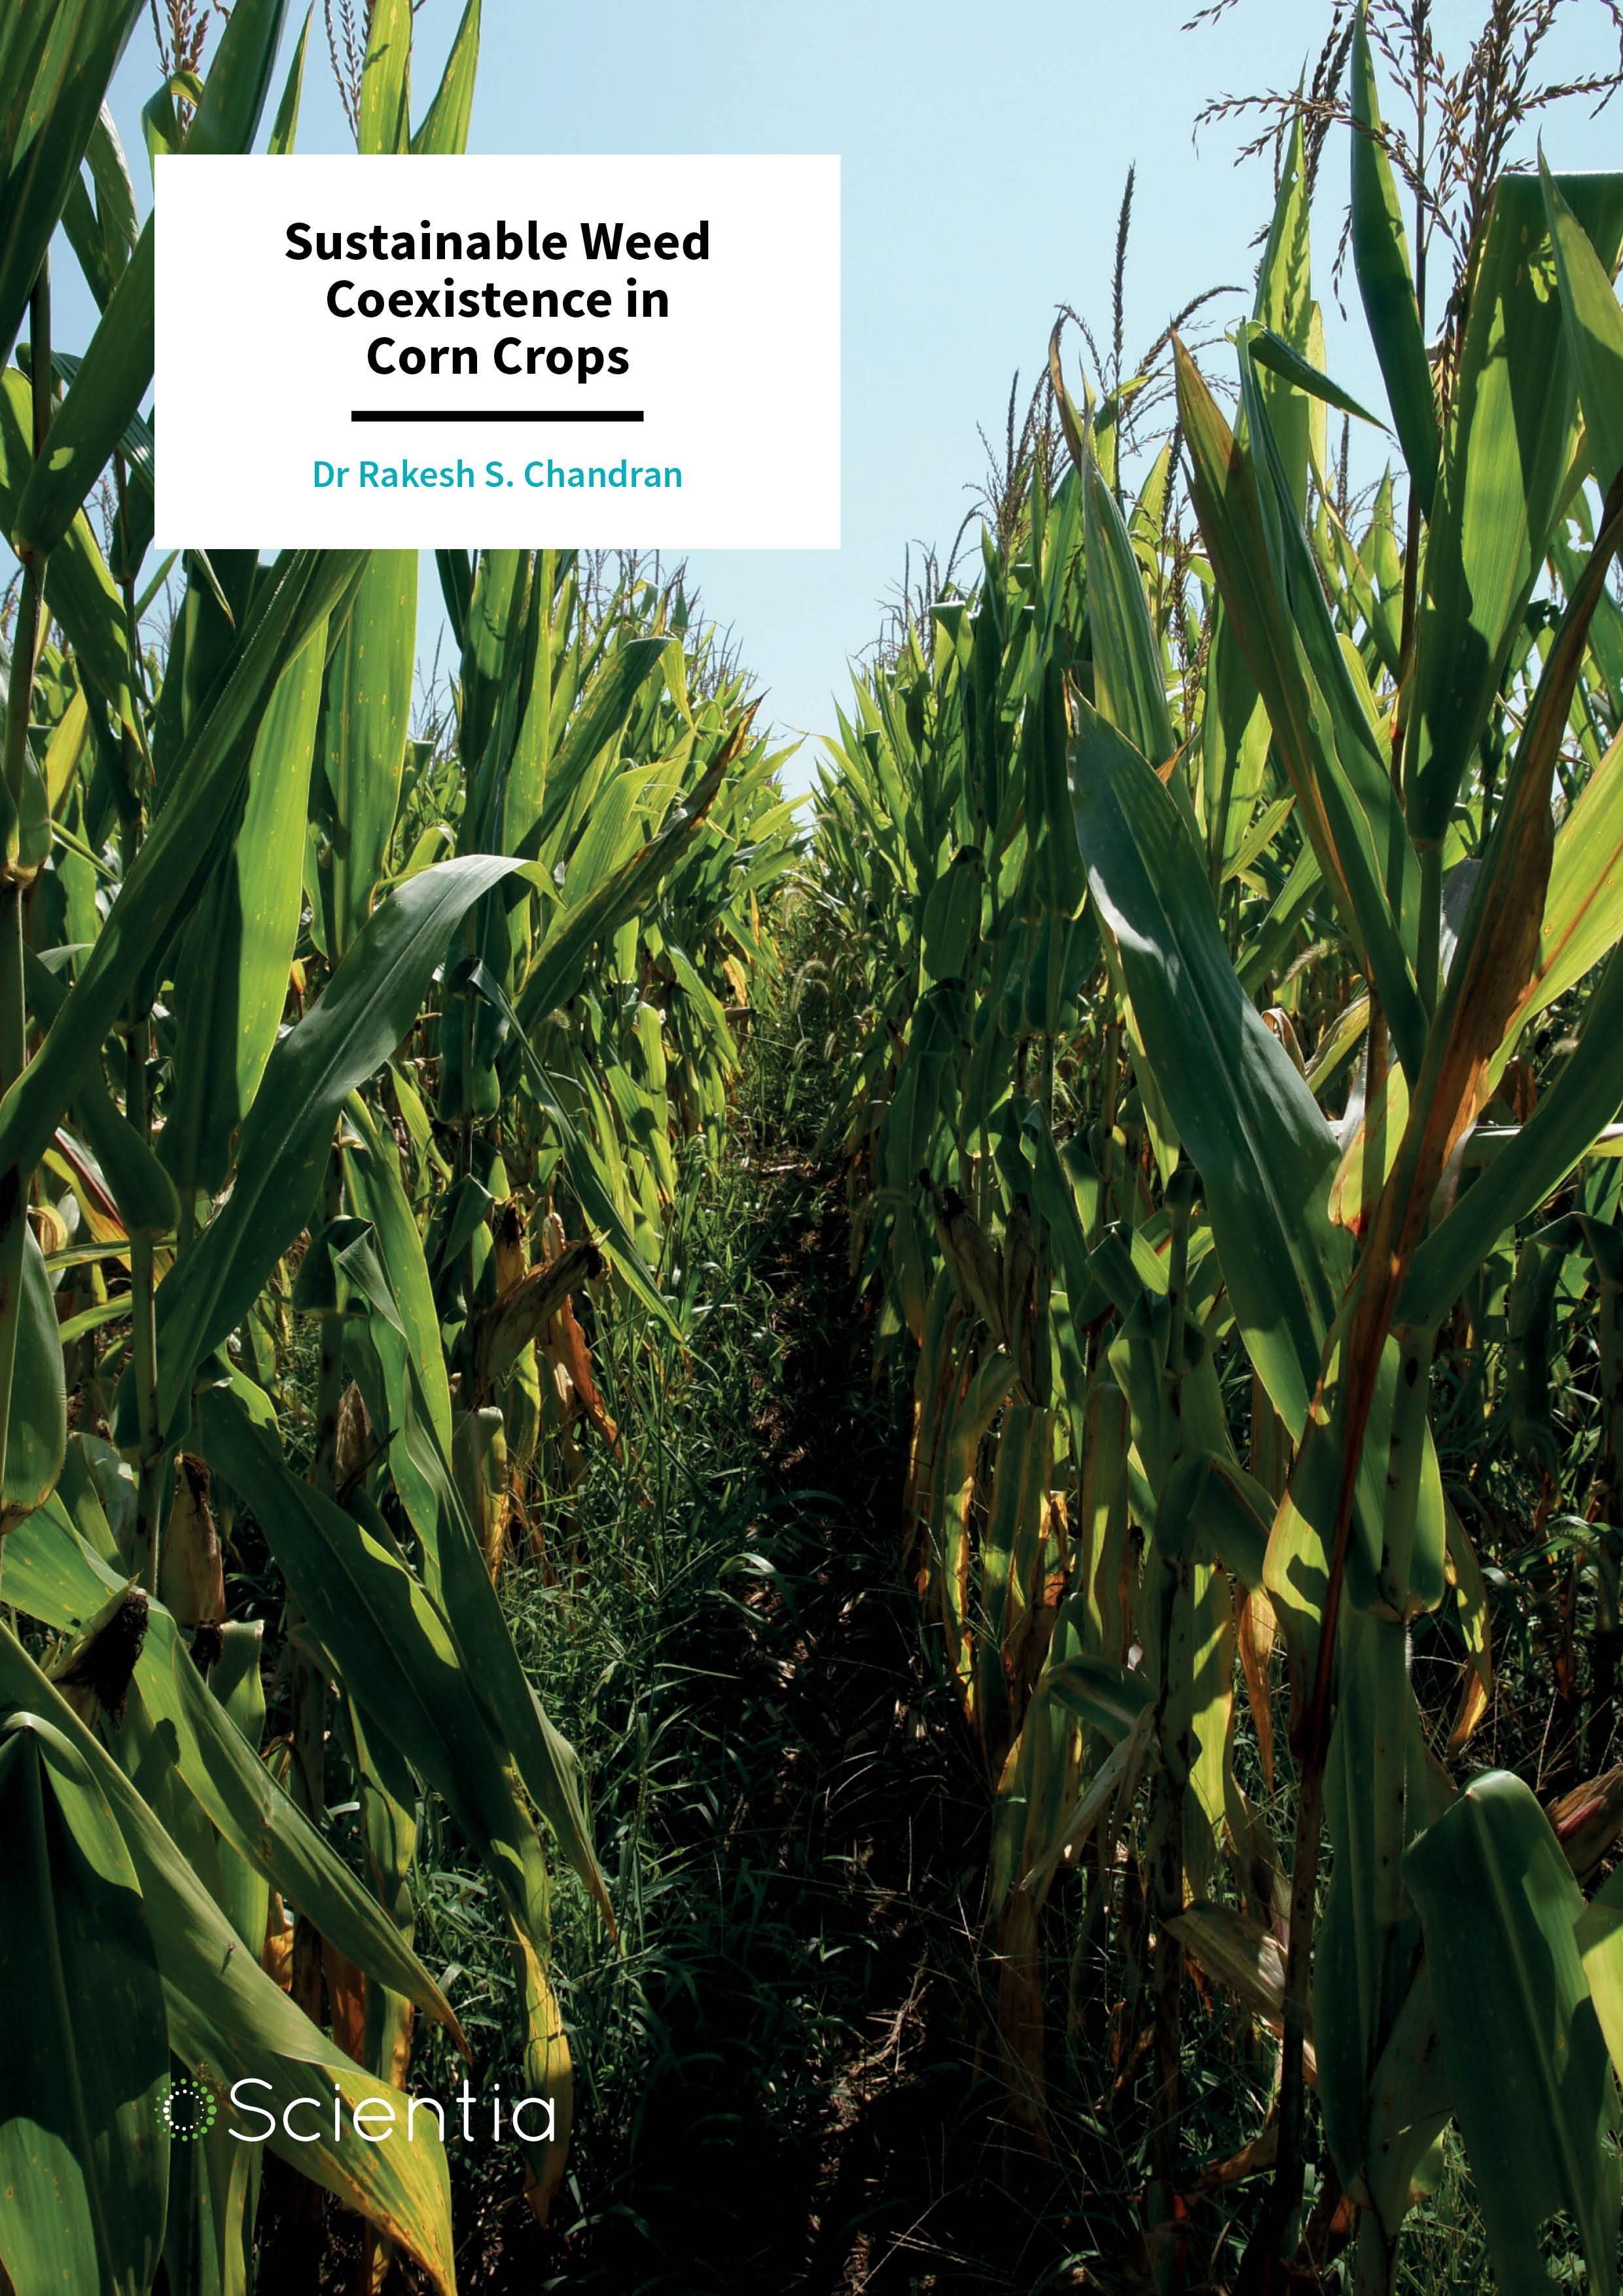 Dr Rakesh S. Chandran – Sustainable Weed Coexistence in Corn Crops